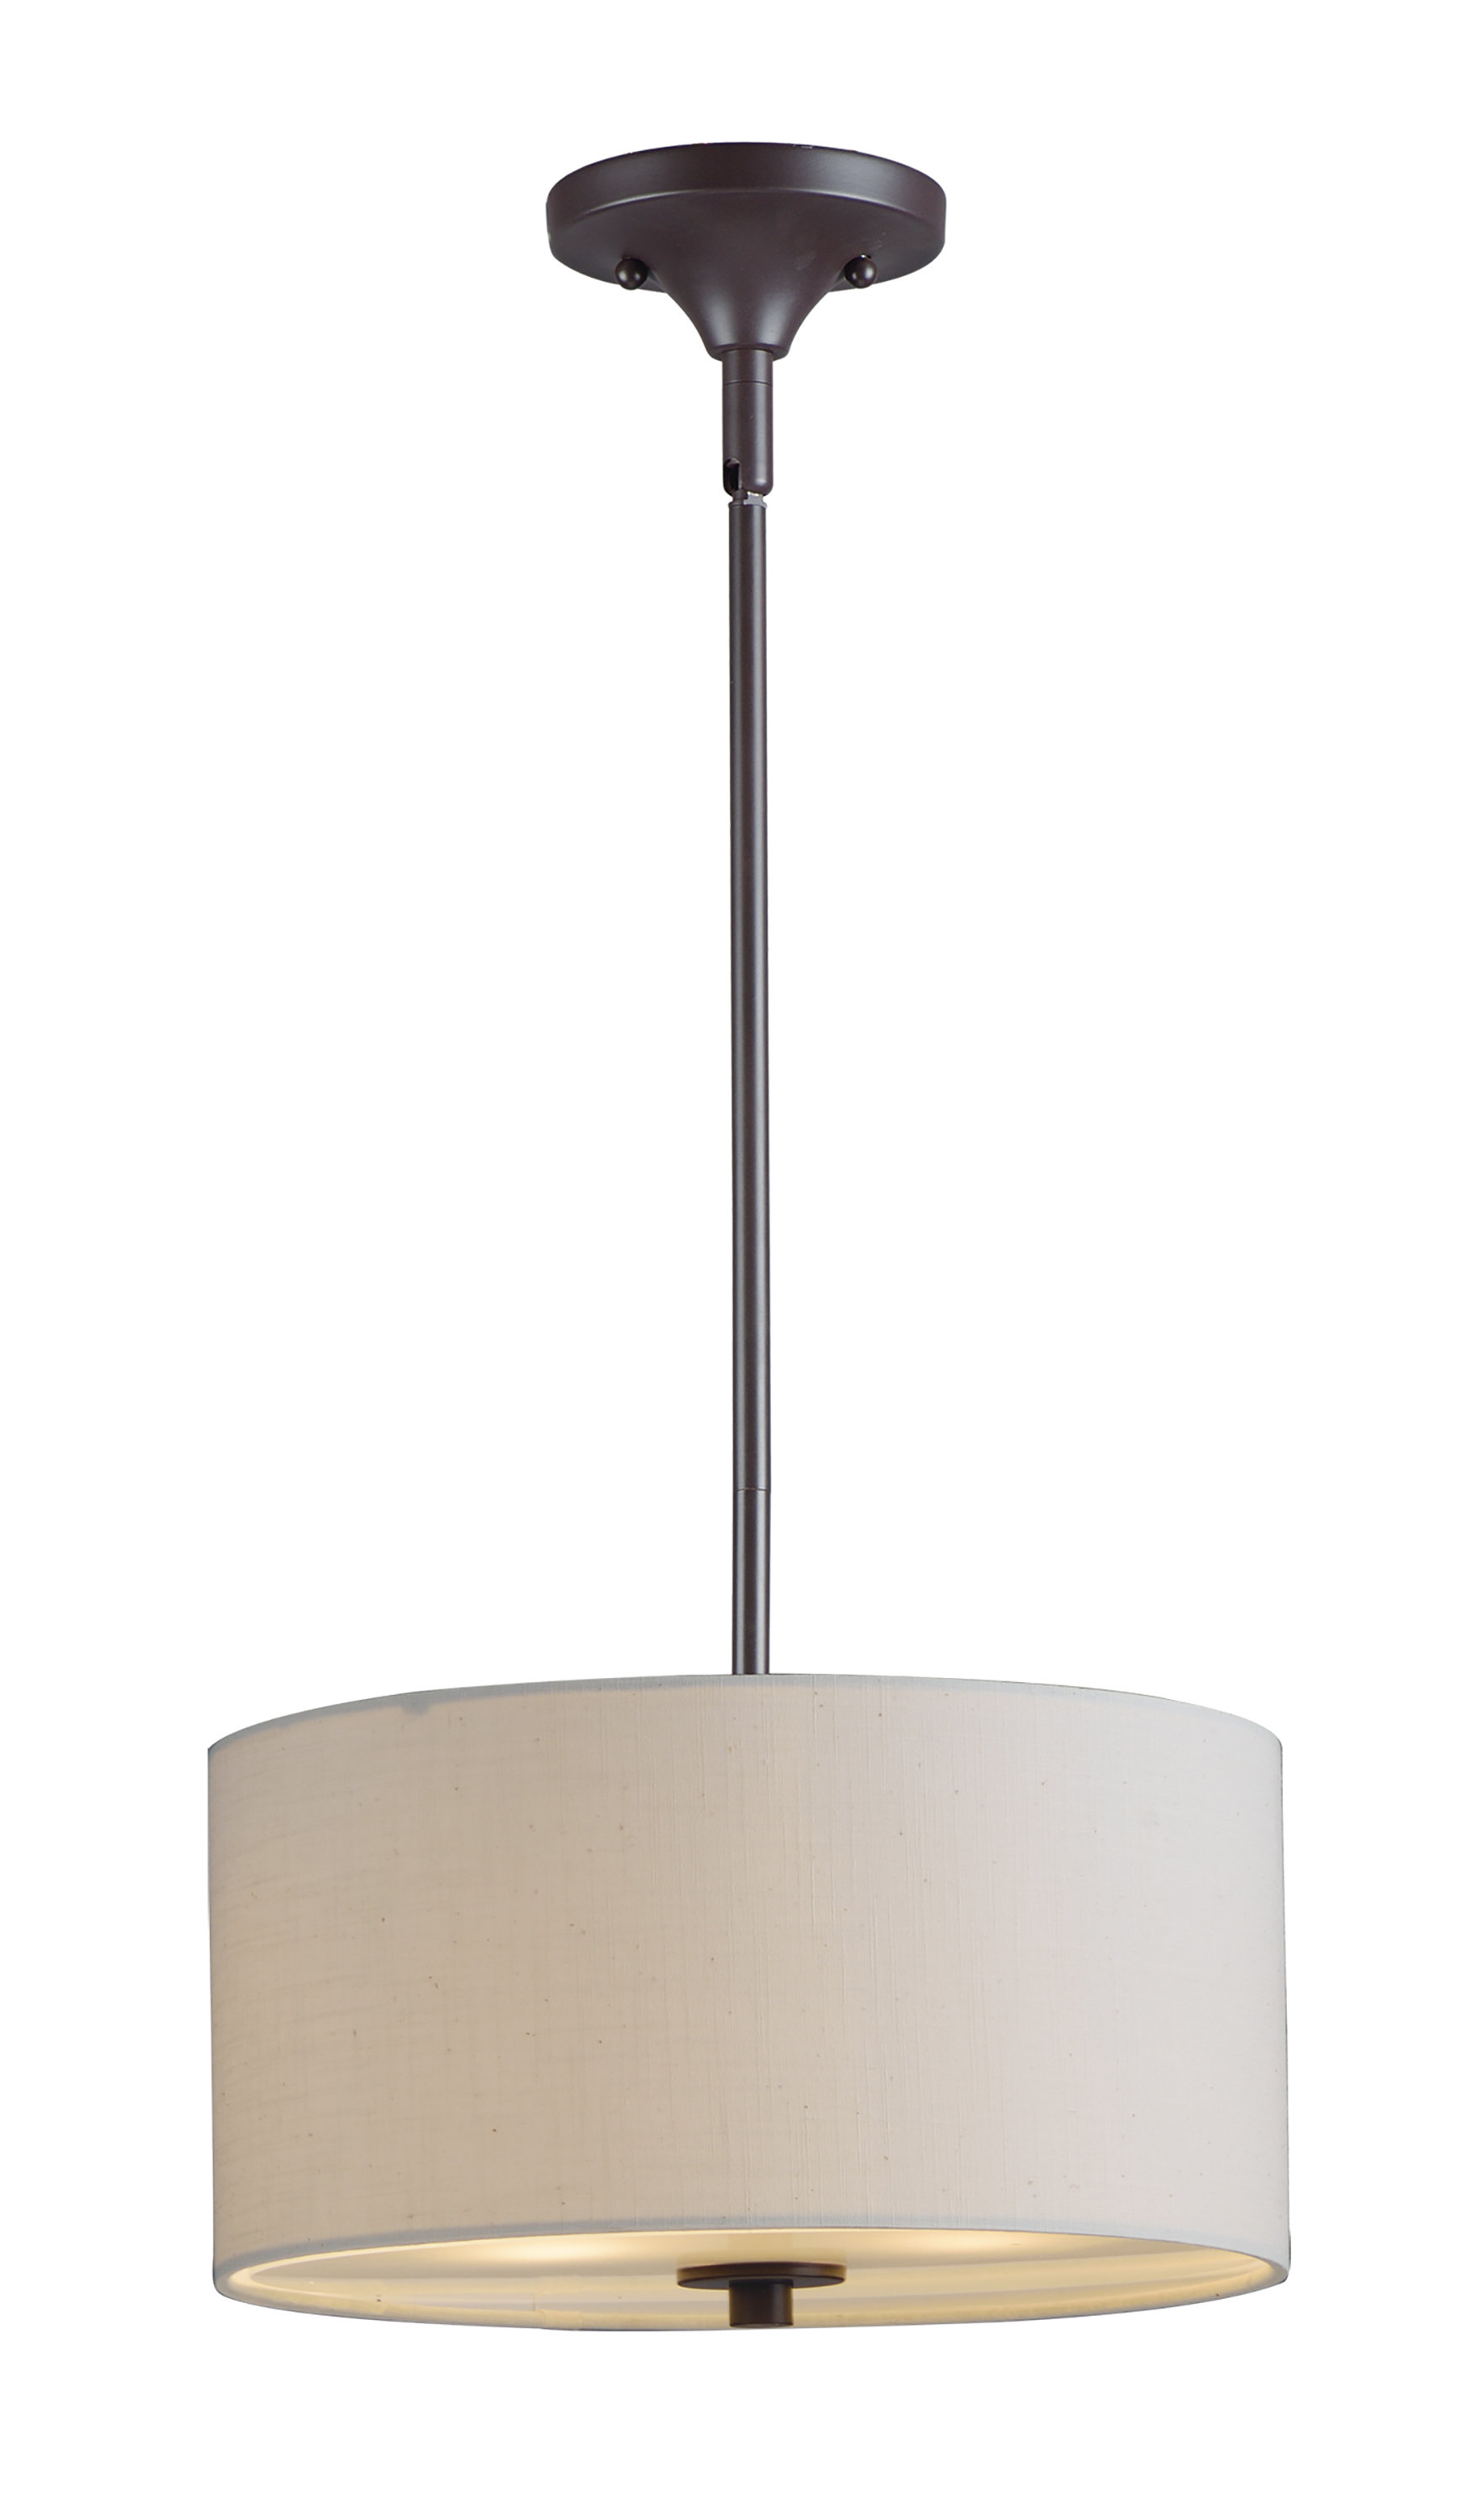 Keesler 2 Light Drum Chandelier Pertaining To Fashionable Friedland 3 Light Drum Tiered Pendants (Gallery 10 of 25)